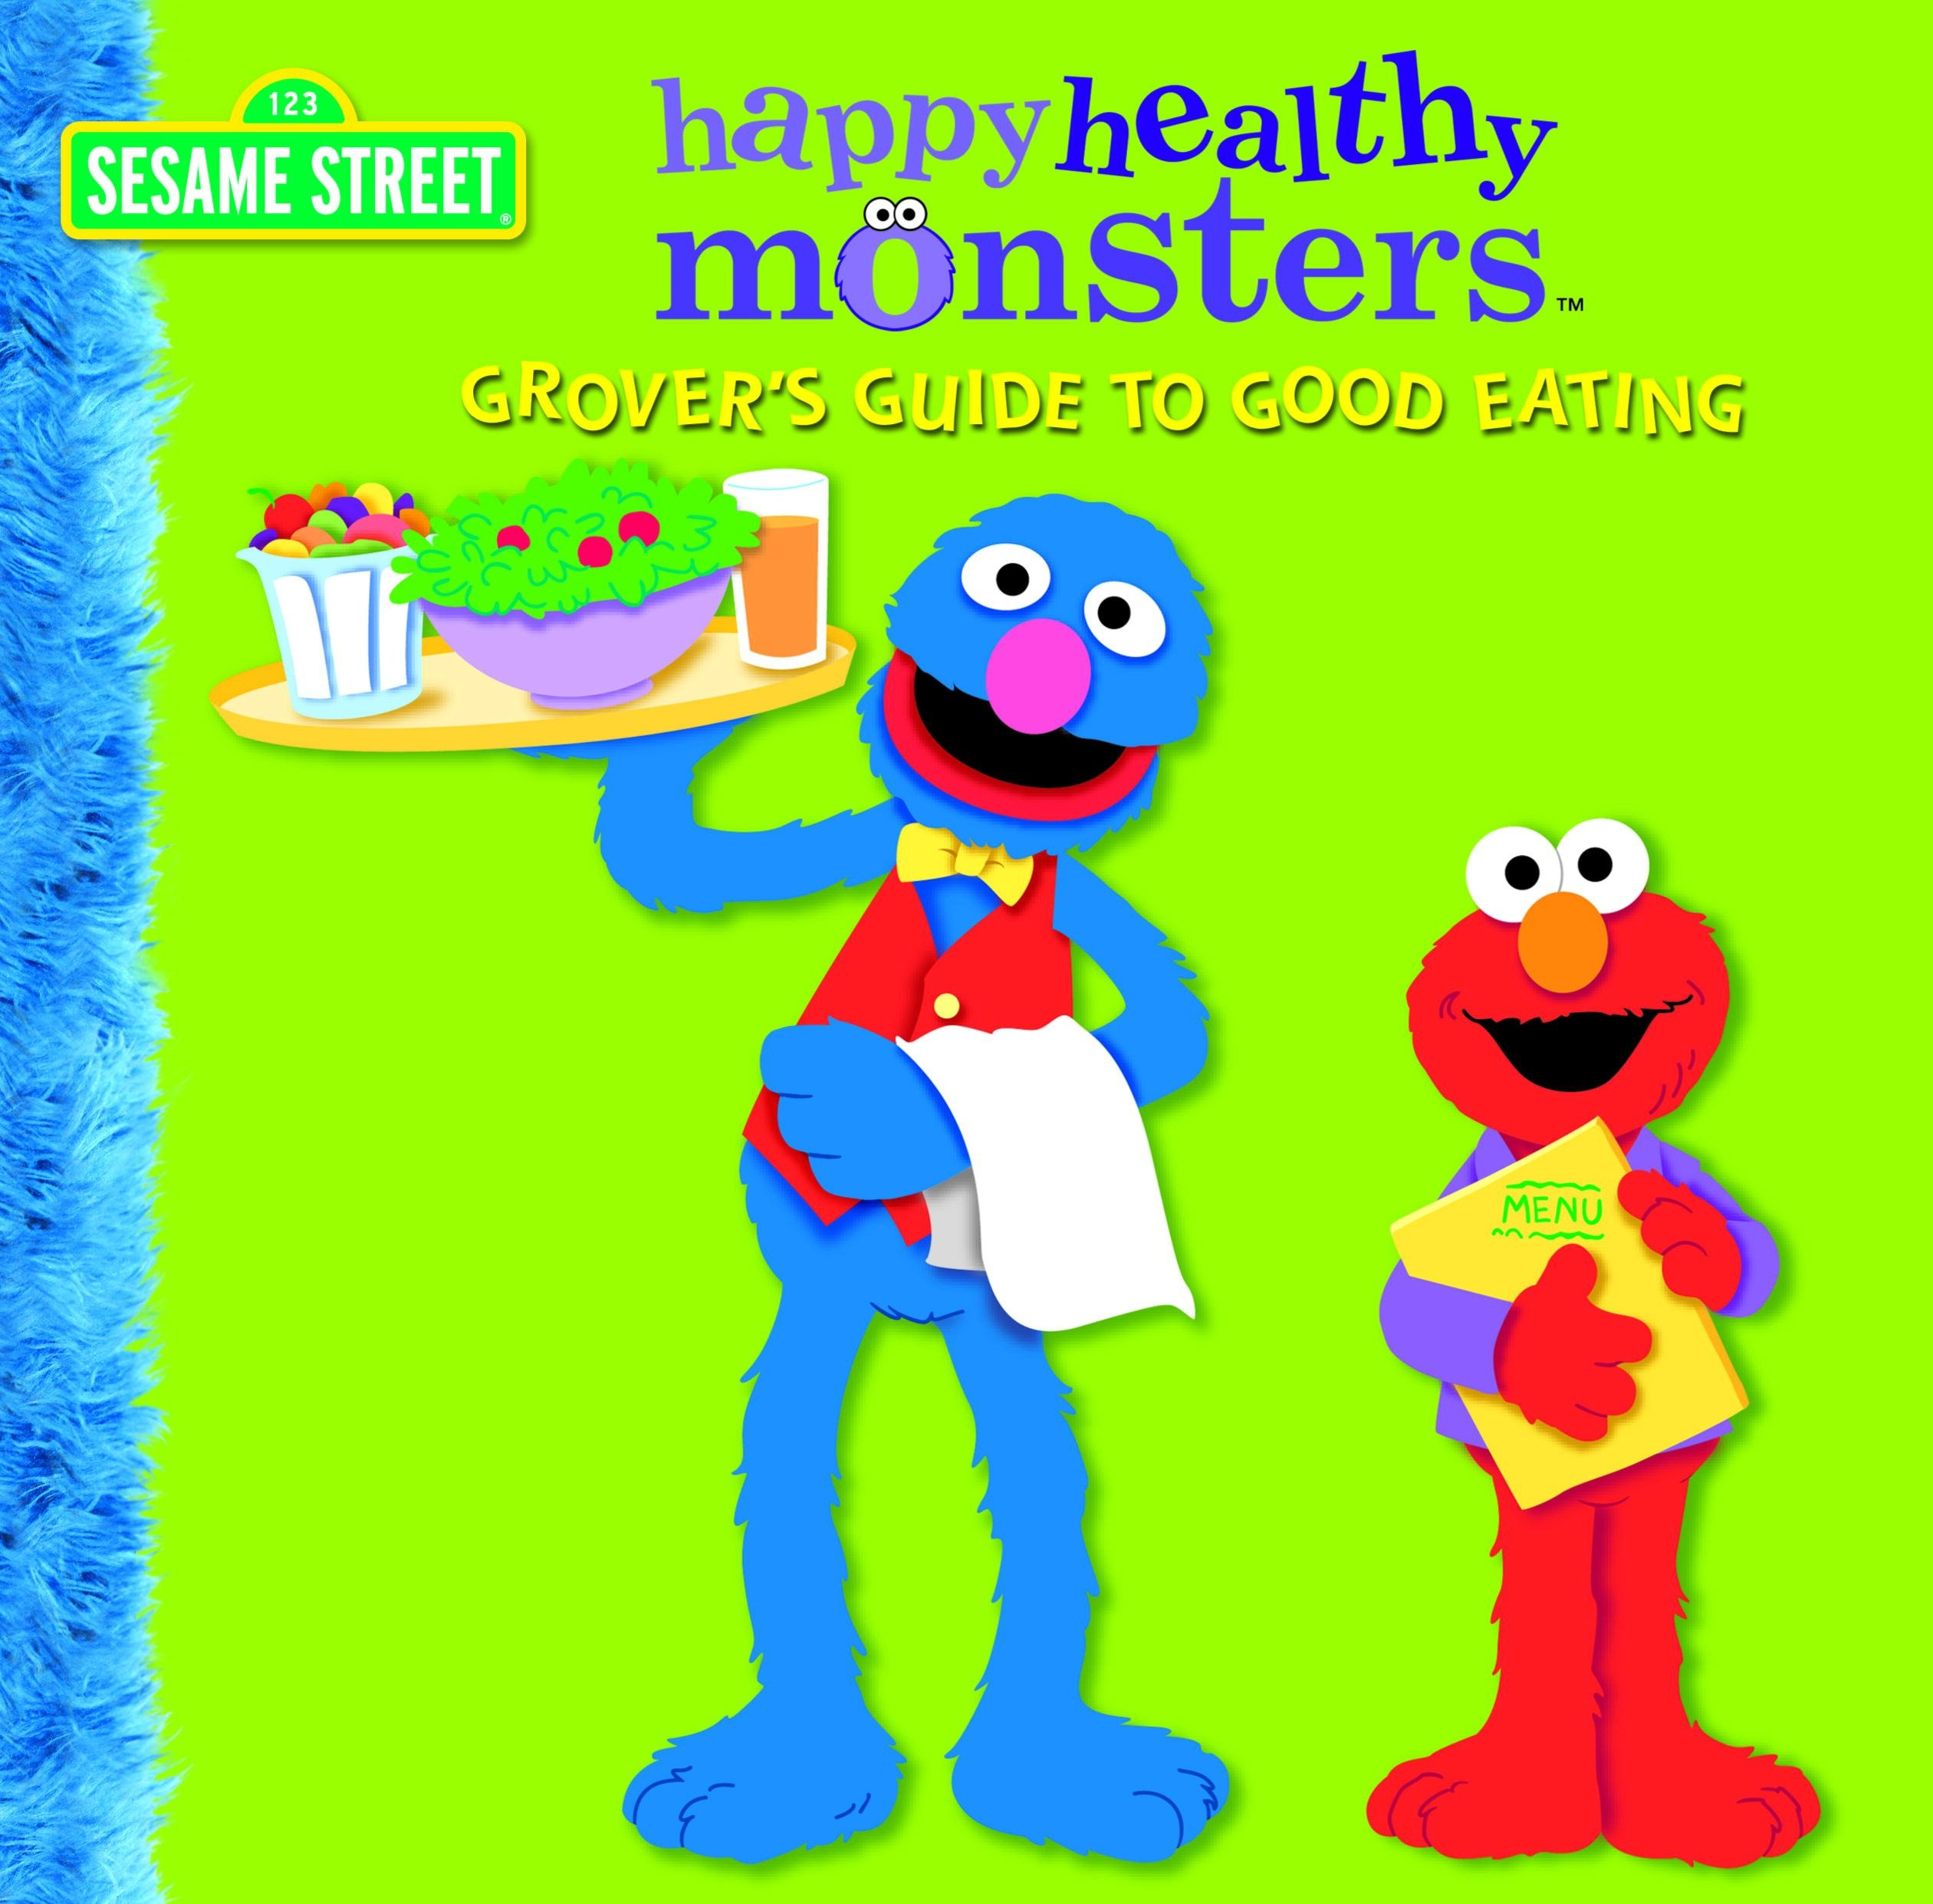 Grover's guide to good eating cover image